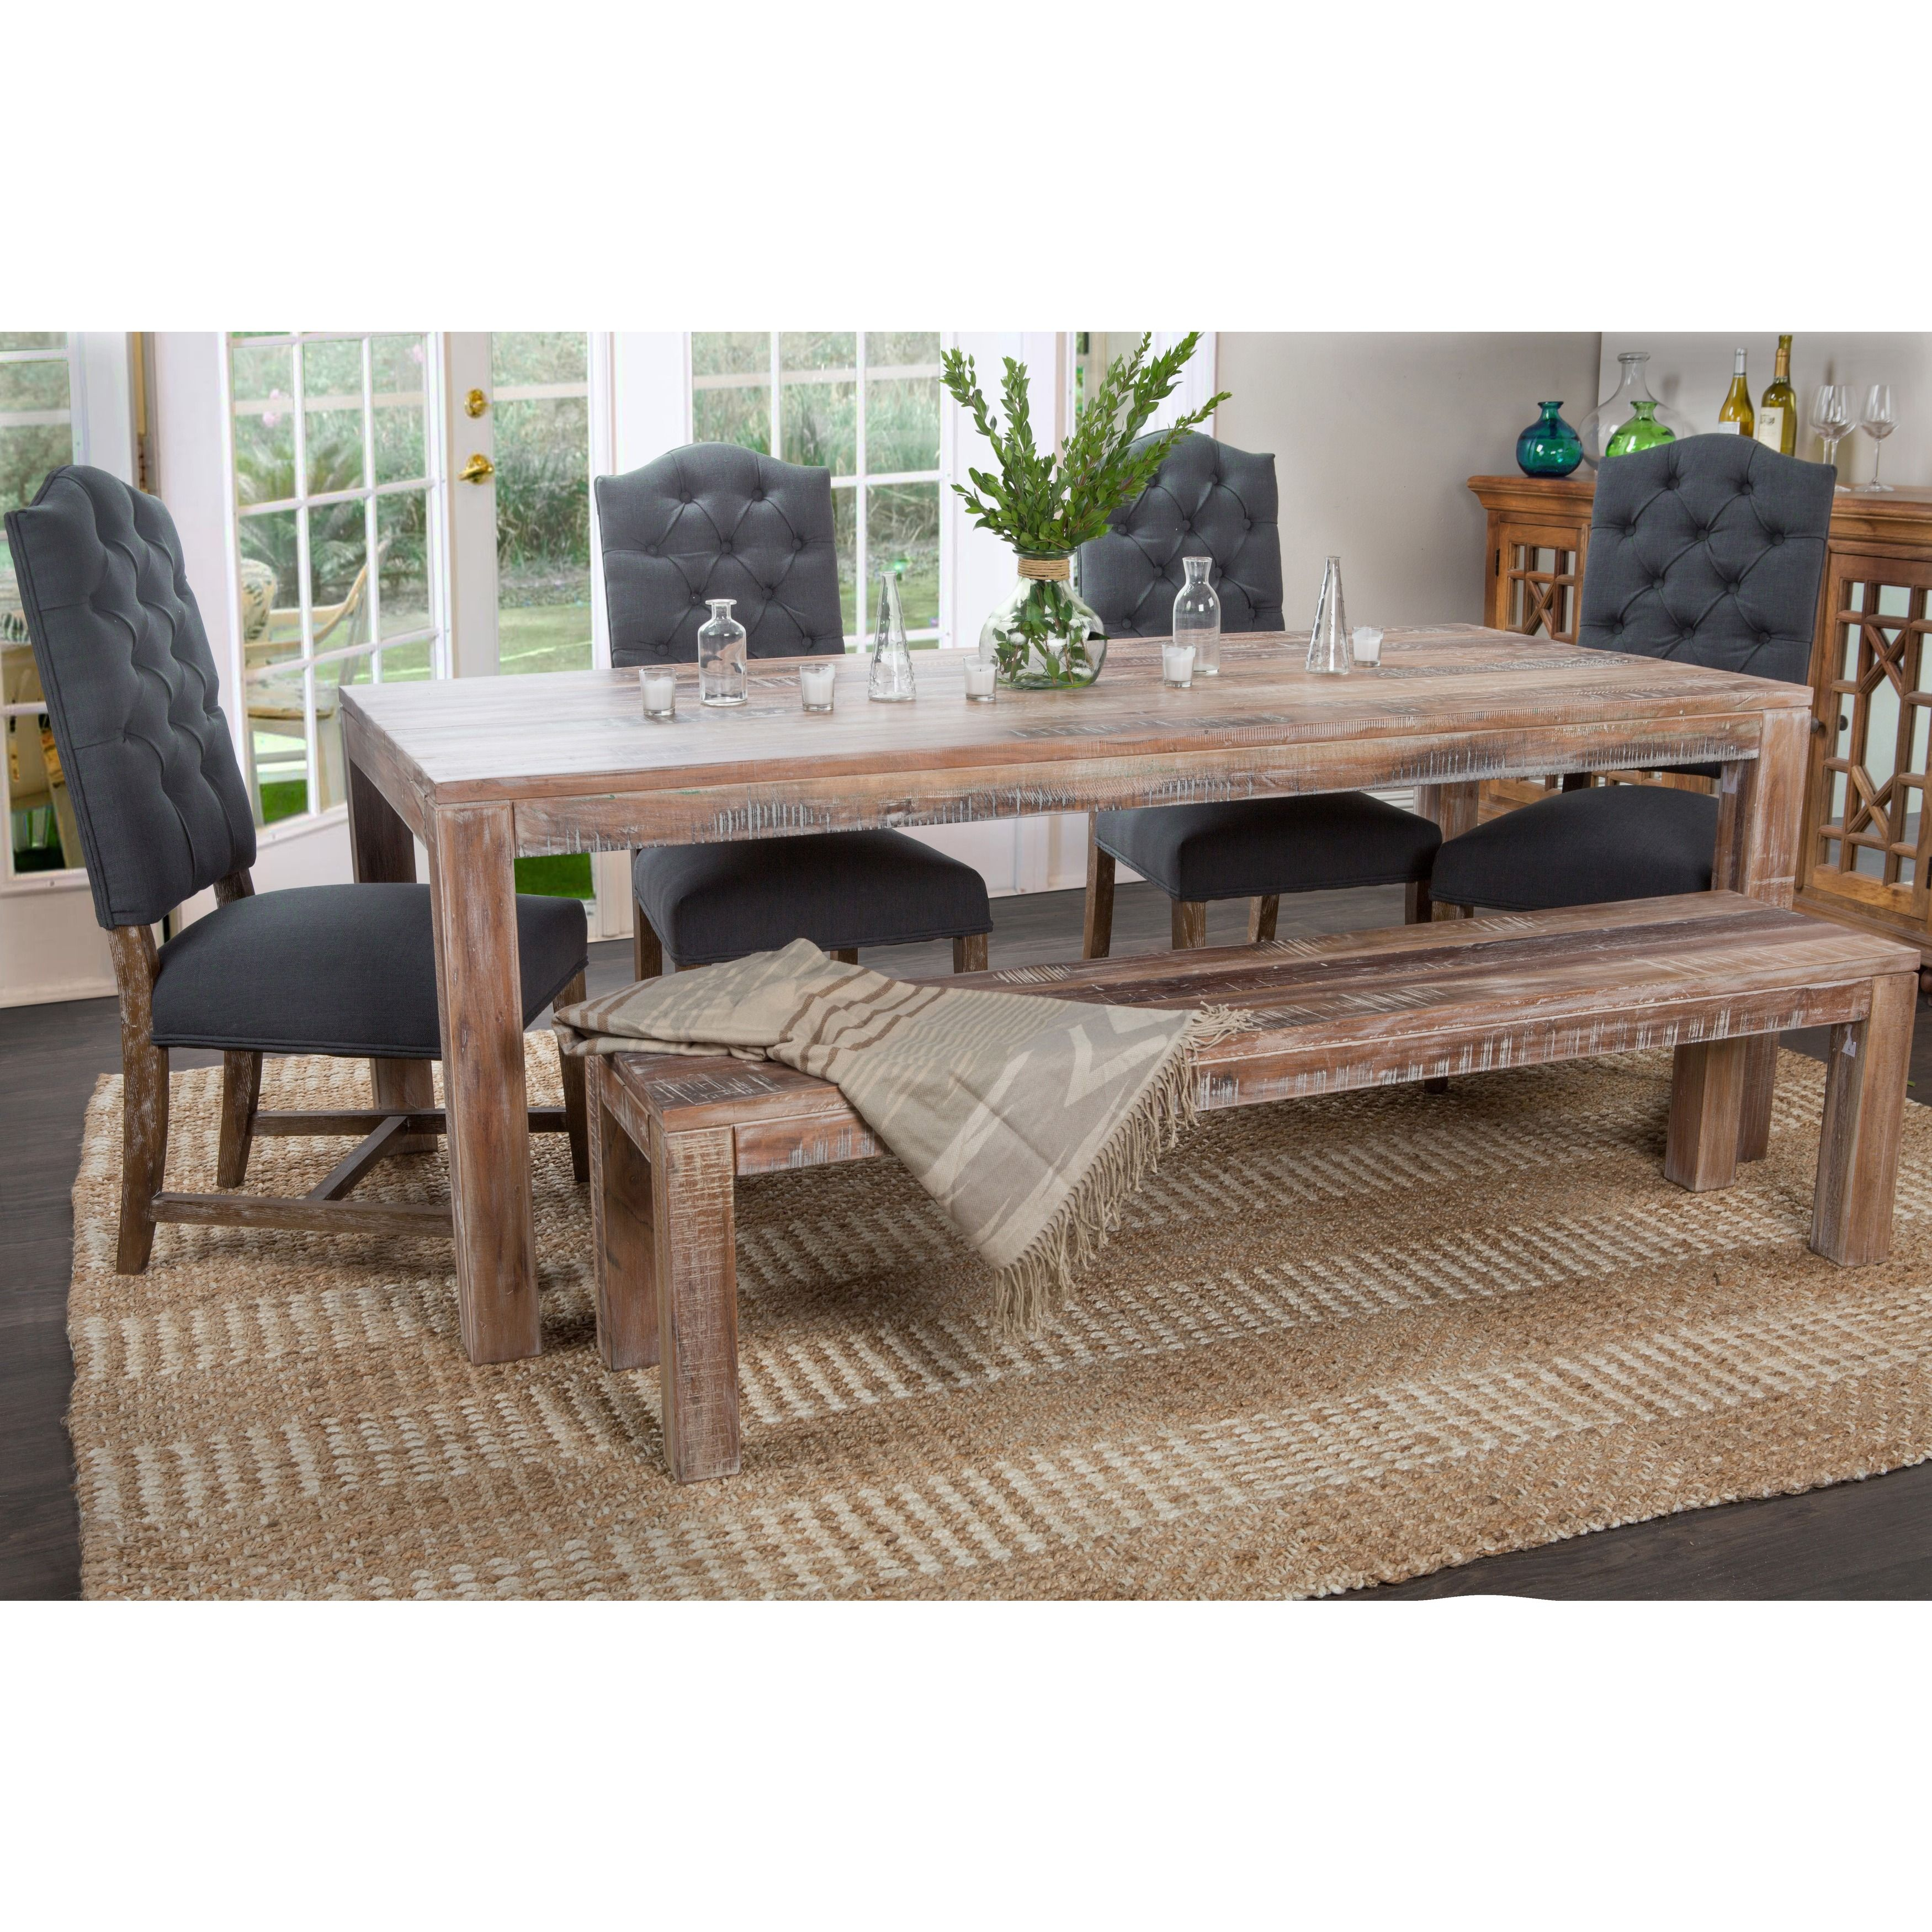 table for s frederick fabulous at mabel sold sale in pin reclaimed kitchen dining wood madison